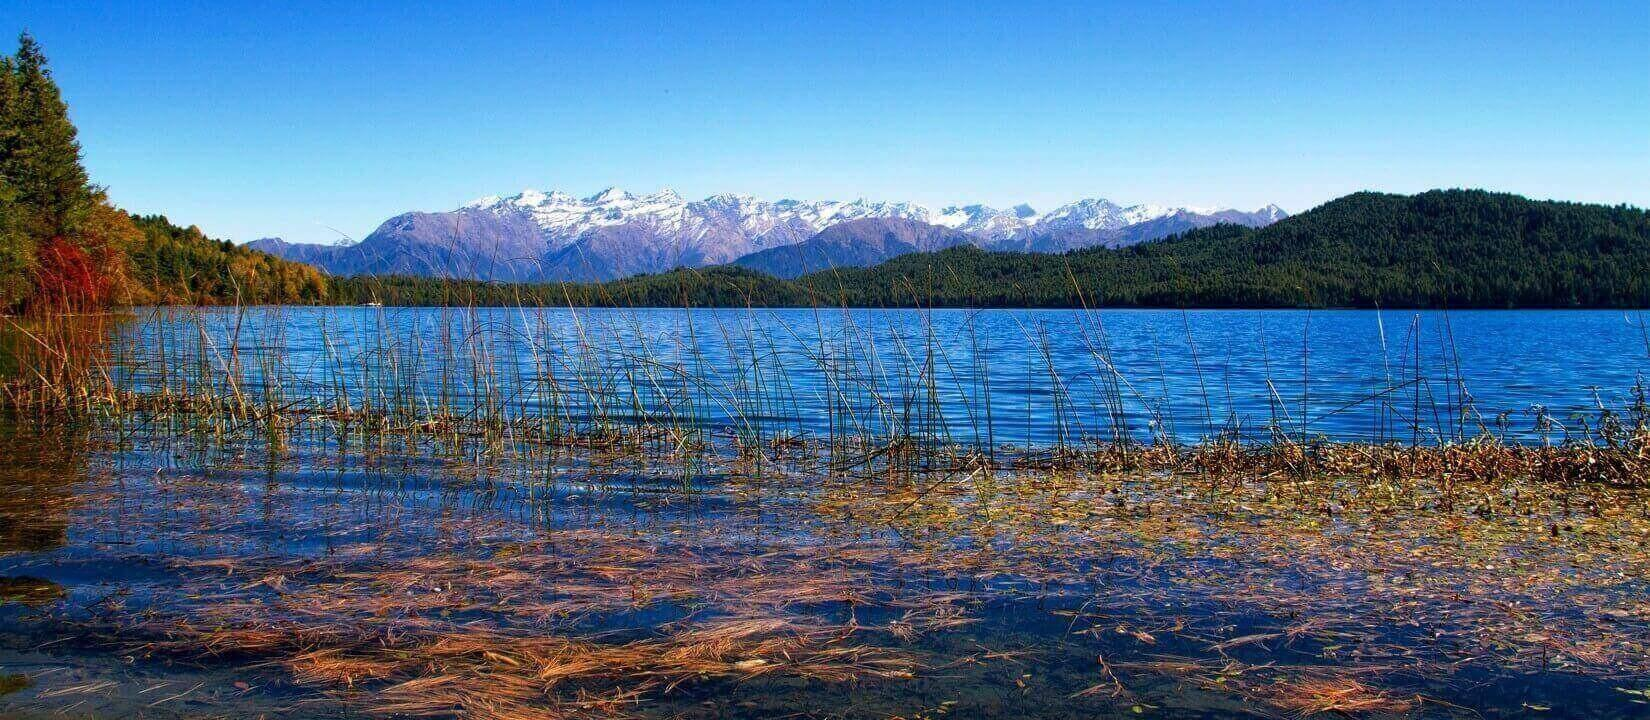 Camping Trek To Wilderness of Rara Lake